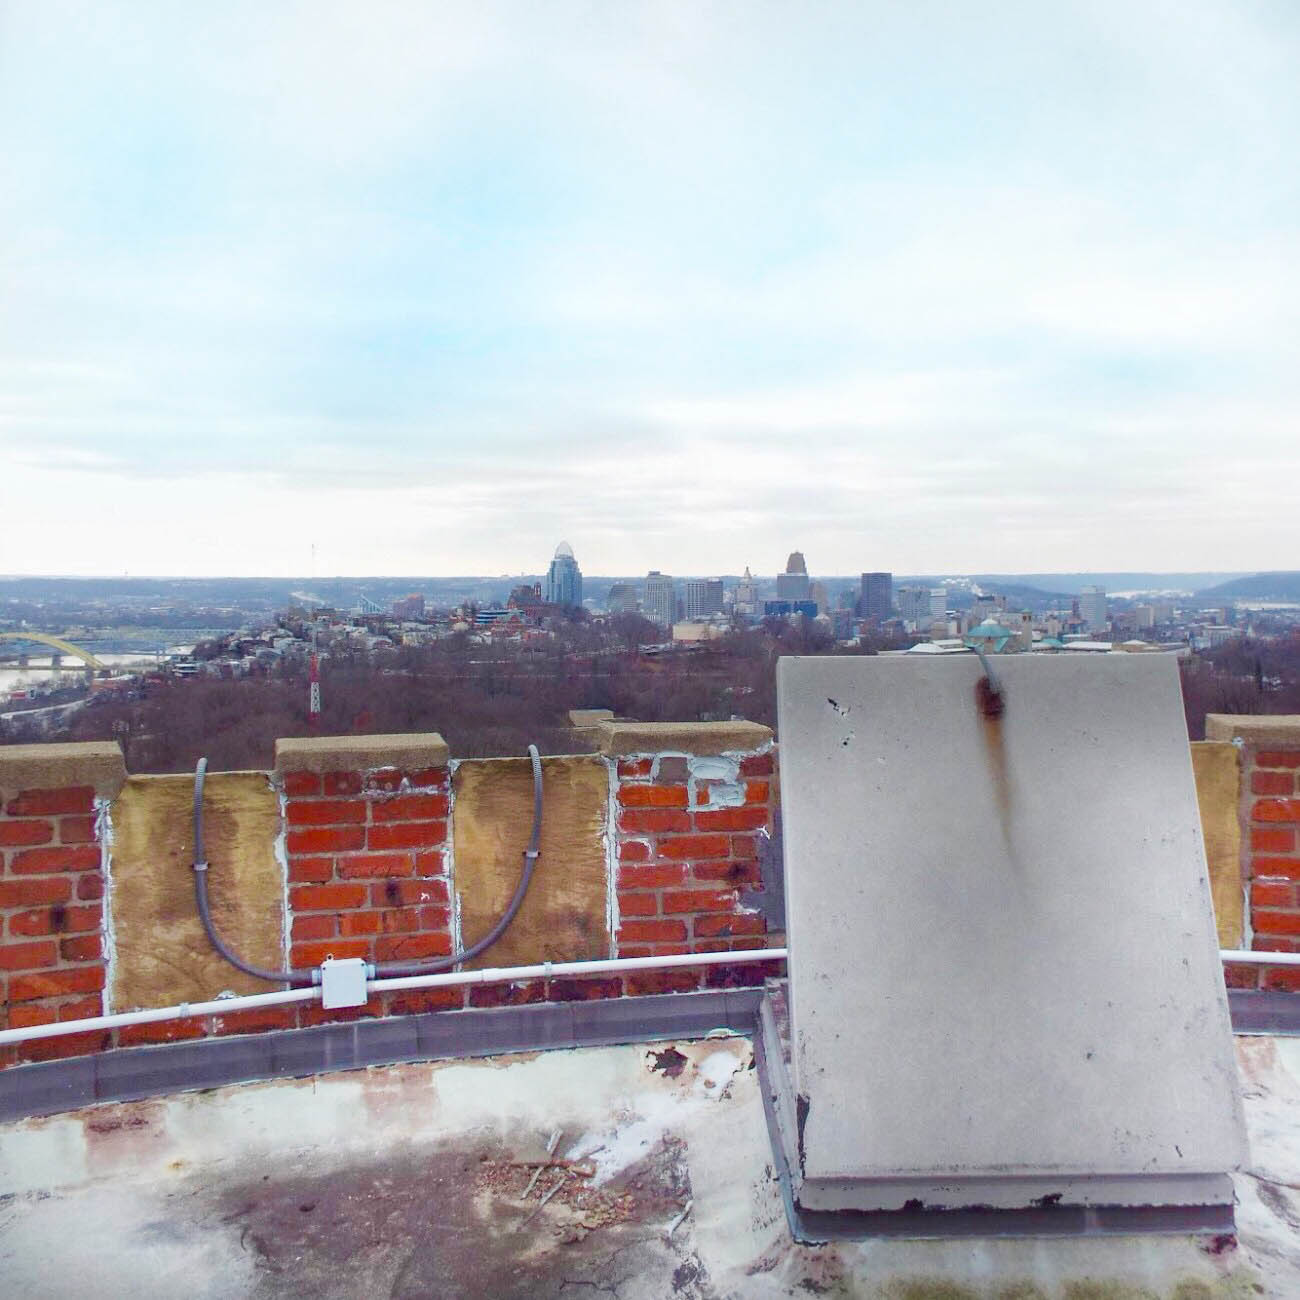 The final stairs lead to a metal hatch door and out onto the observation deck roof to a breathtaking view of downtown Cincinnati. / Image: Amy Bauer // Published: 3.14.19